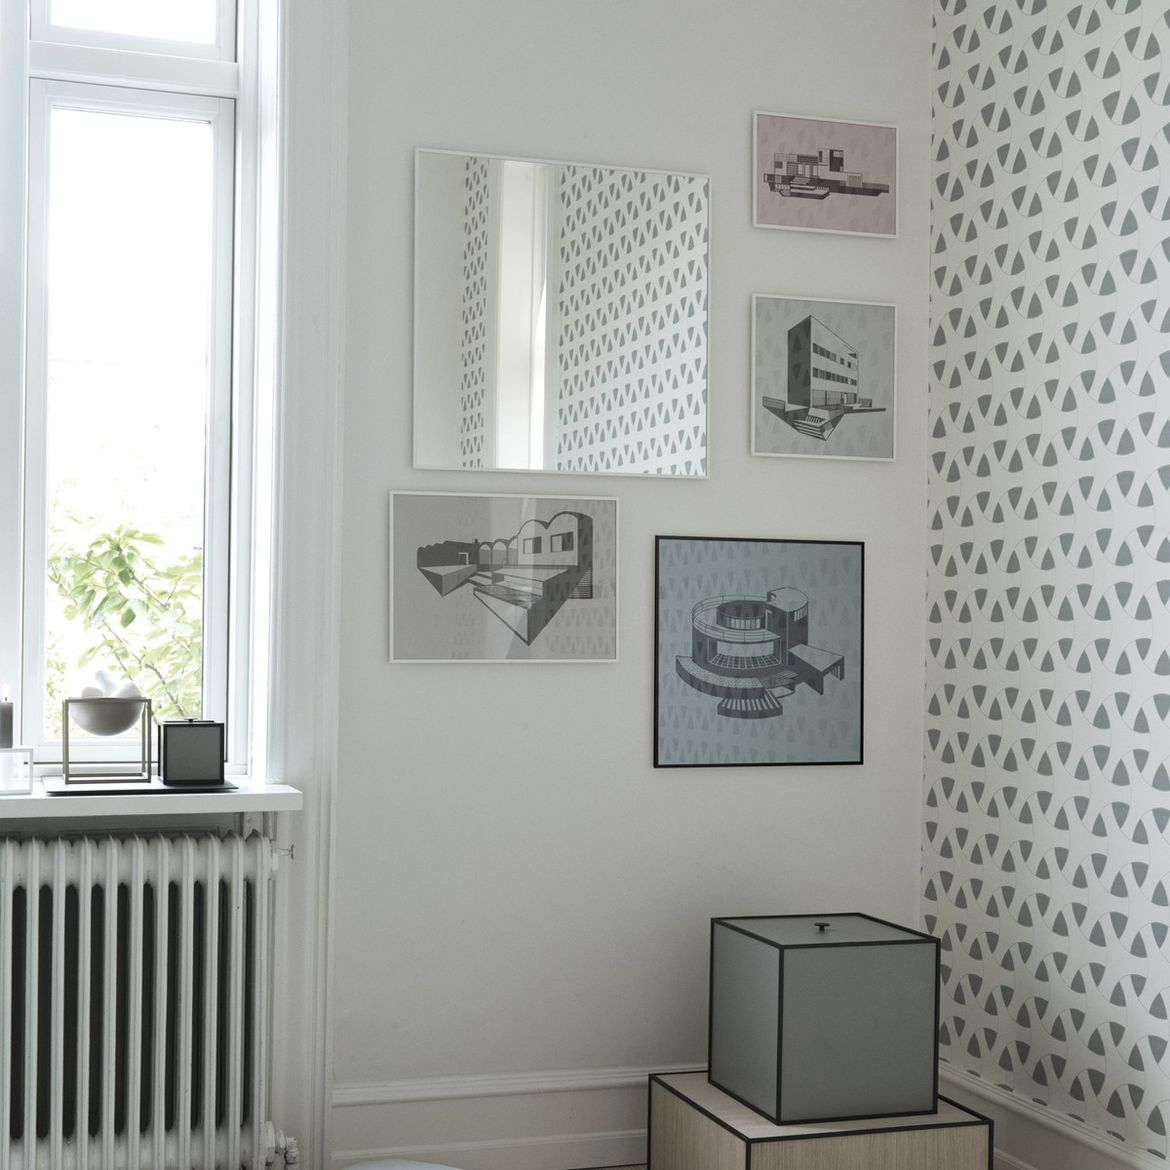 Minimalist frames featuring architectural prints